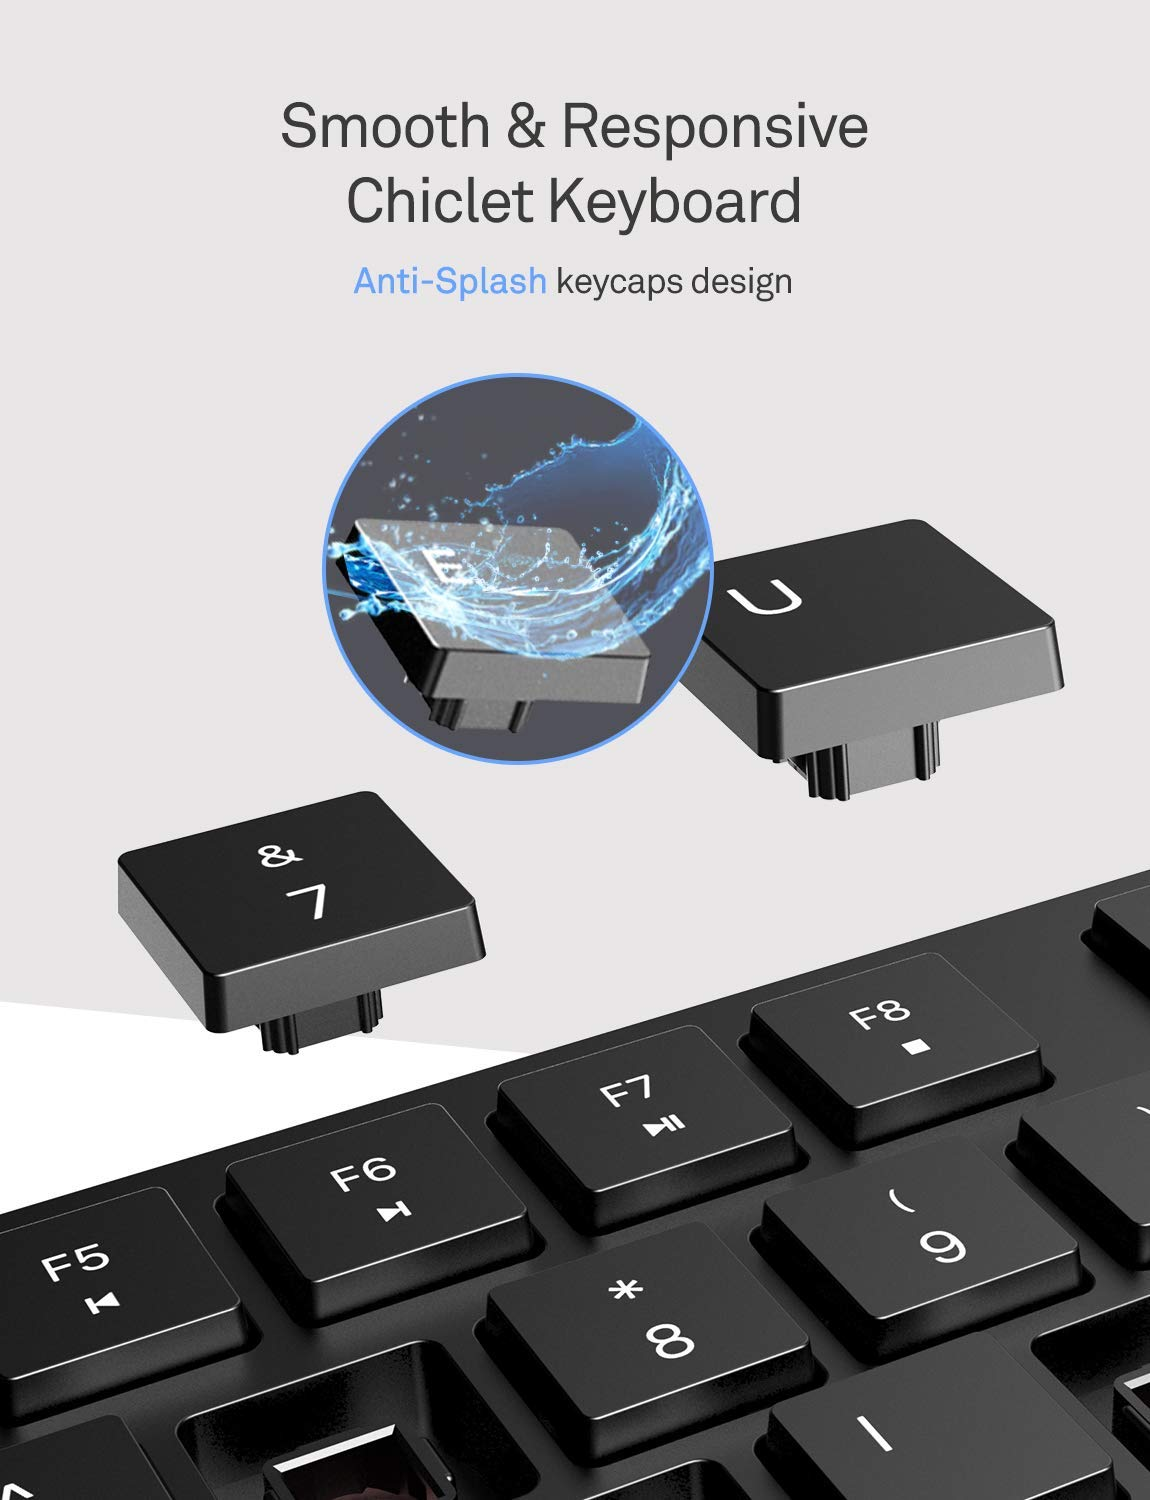 VicTsing Wireless Keyboard and Mouse Combo Black Windows Stylish Full-Size Keyboard and Quiet Mouse 2.4GHz Wireless Connection with USB Receiver for Desktop Computer Laptop PC